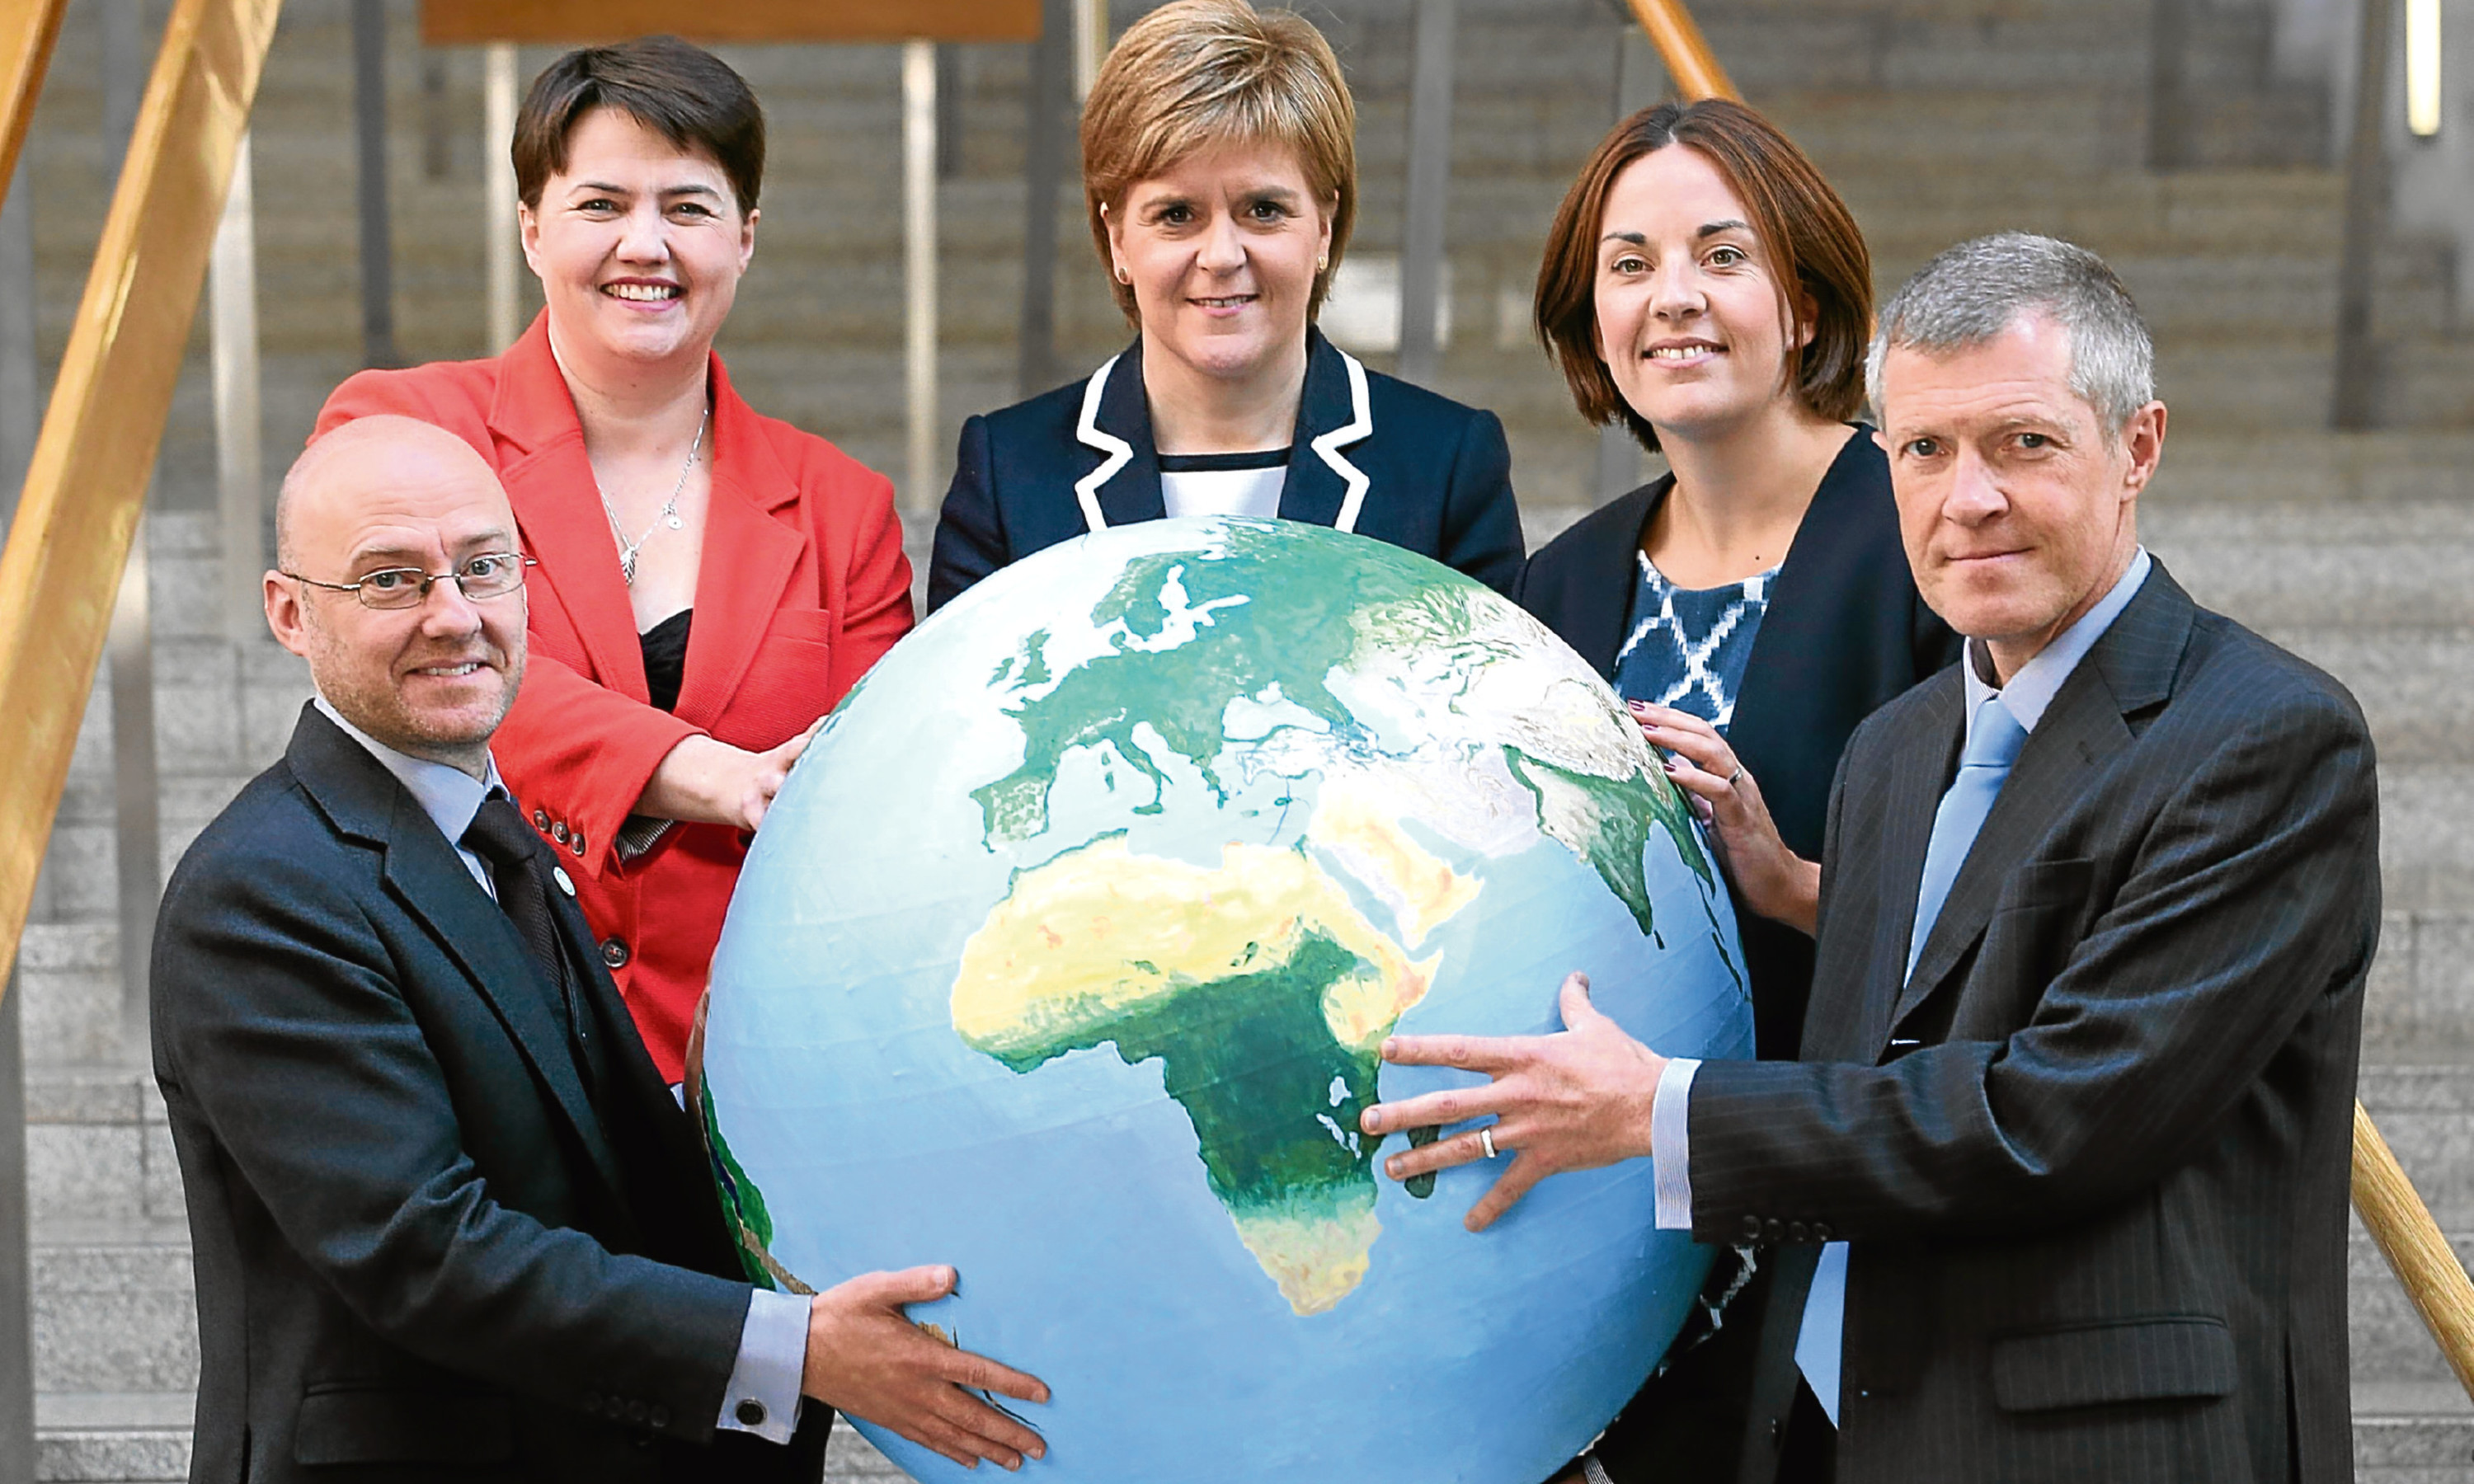 Scotland's party leaders, from left, Patrick Harvie, Ruth Davidson, Nicola Sturgeon, Kesia Dugdale and Willie Rennie.